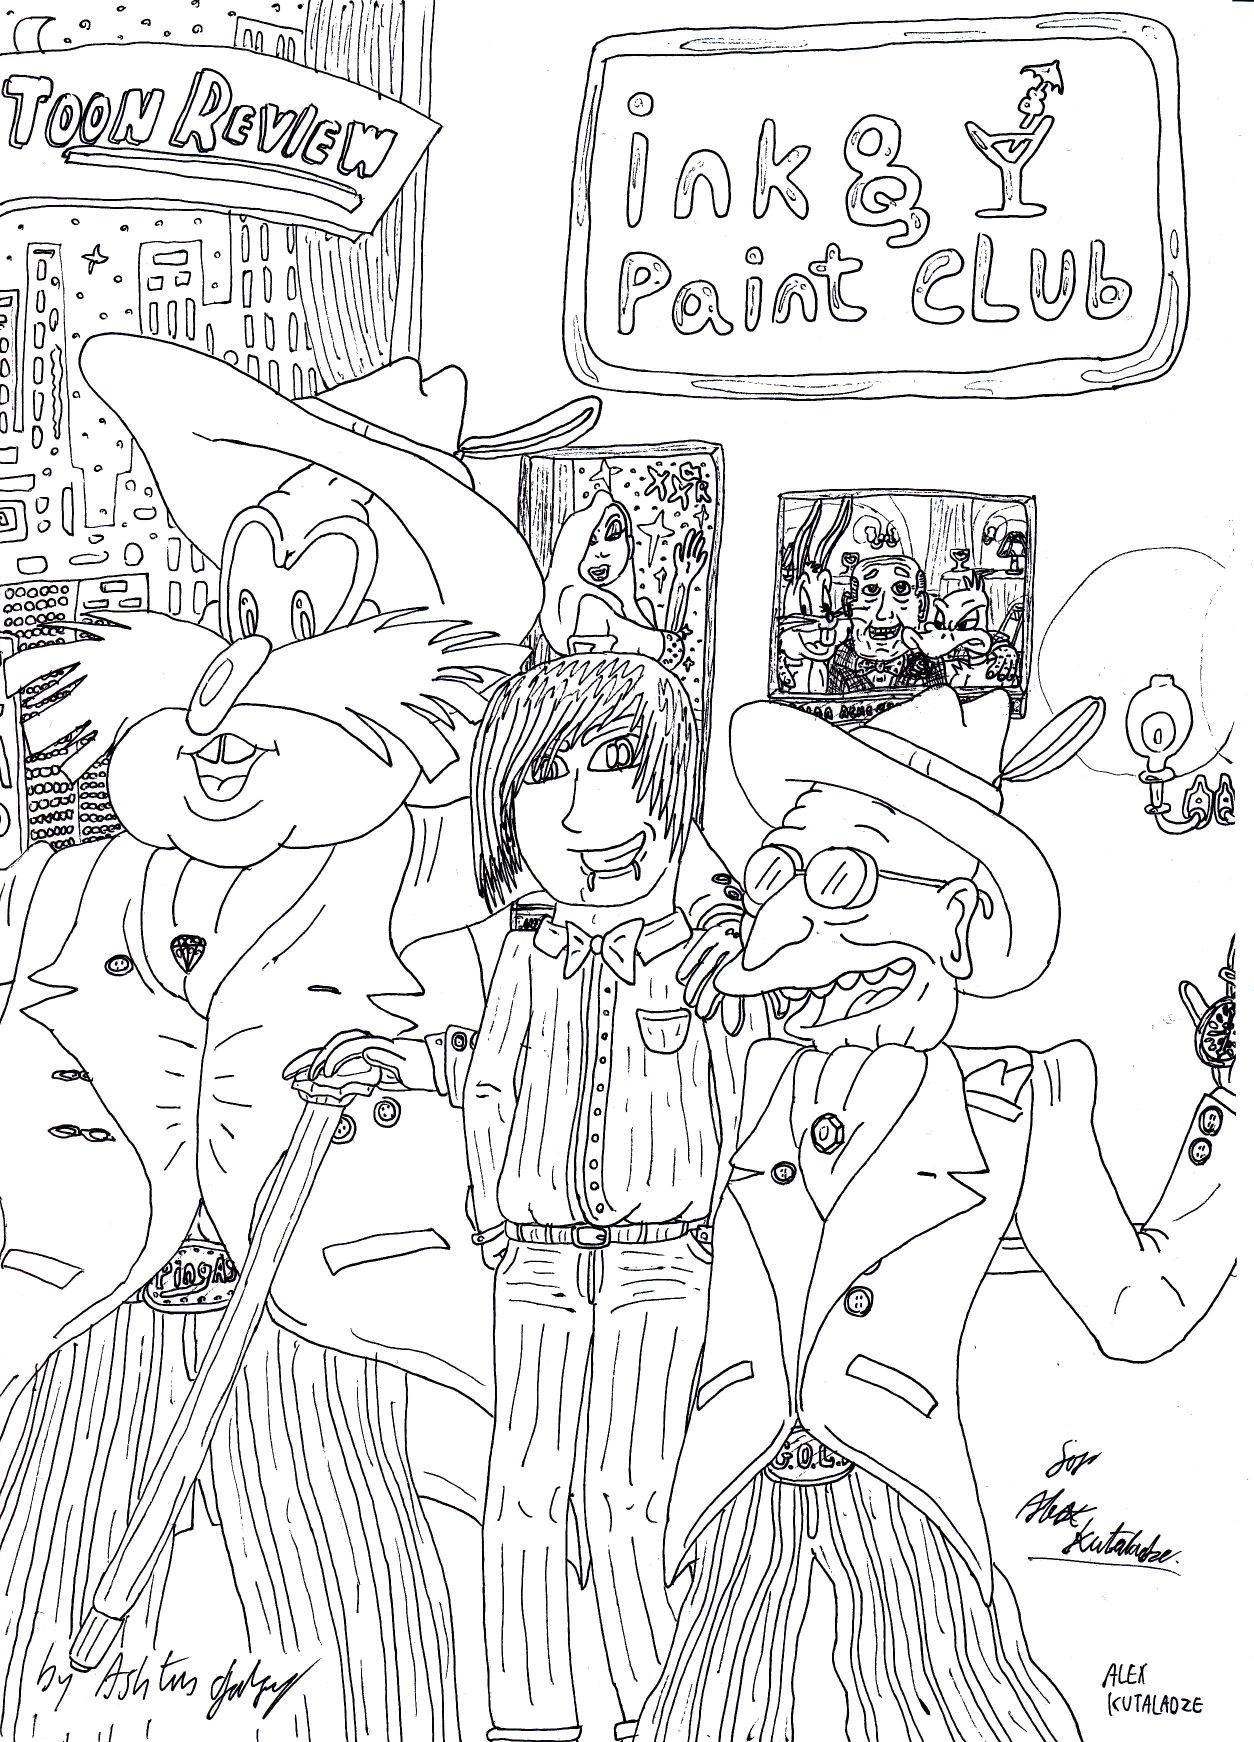 AK at the Ink and Paint Club